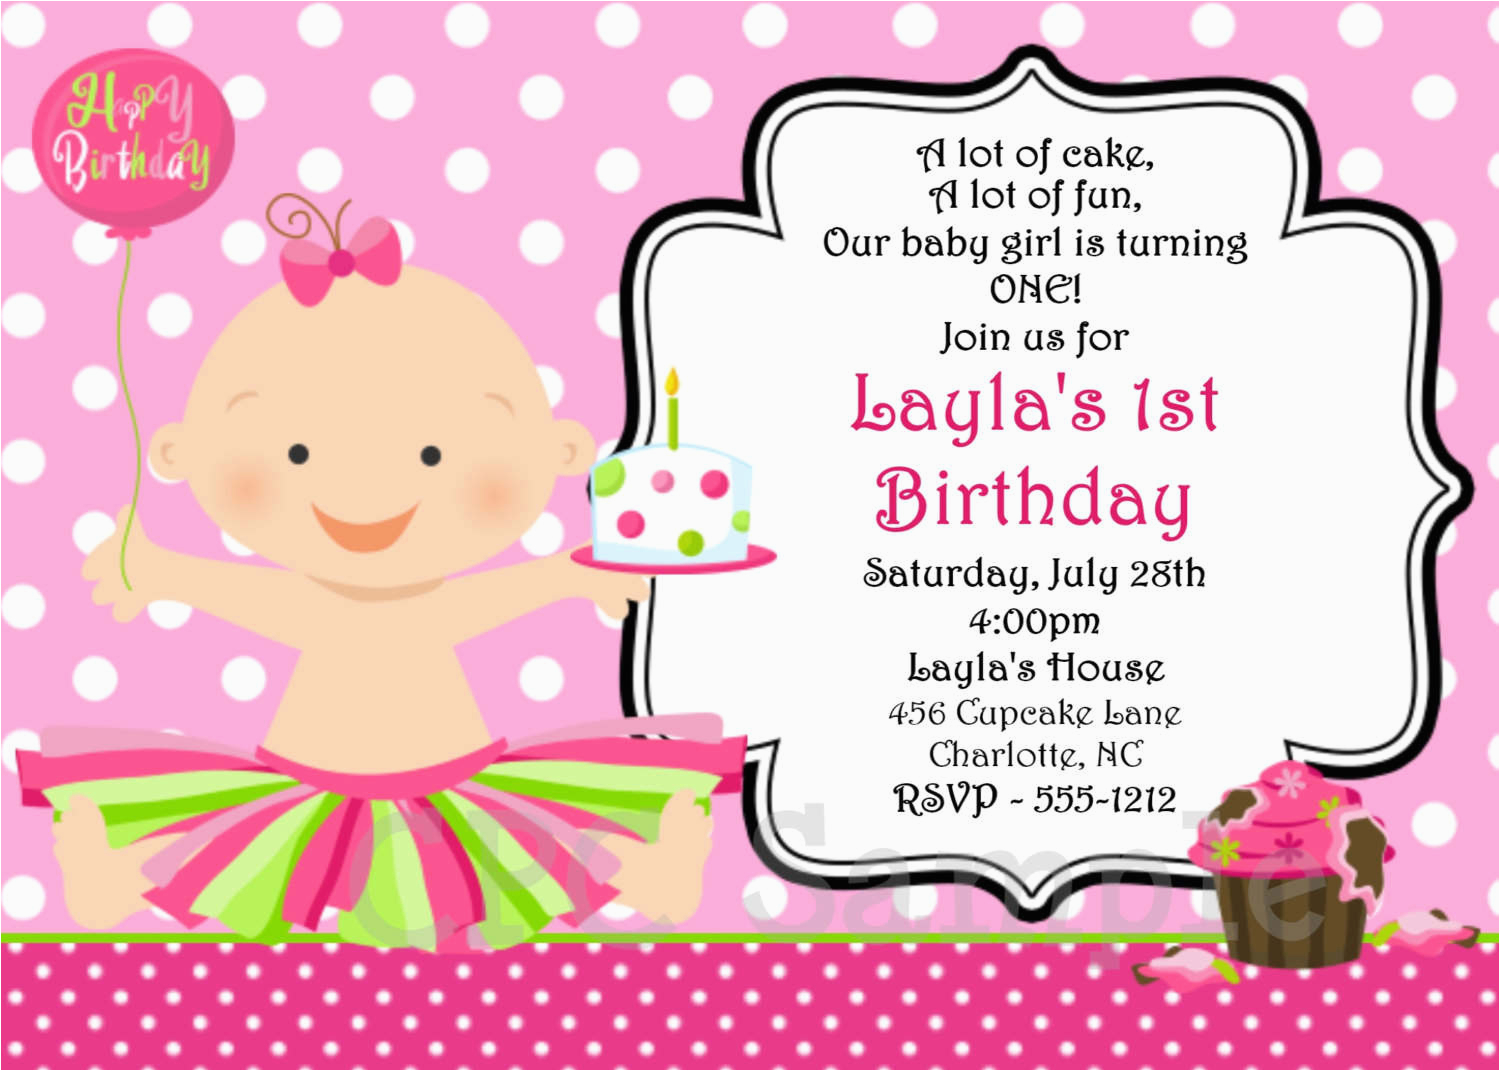 create birthday invitations free download images for inspiration